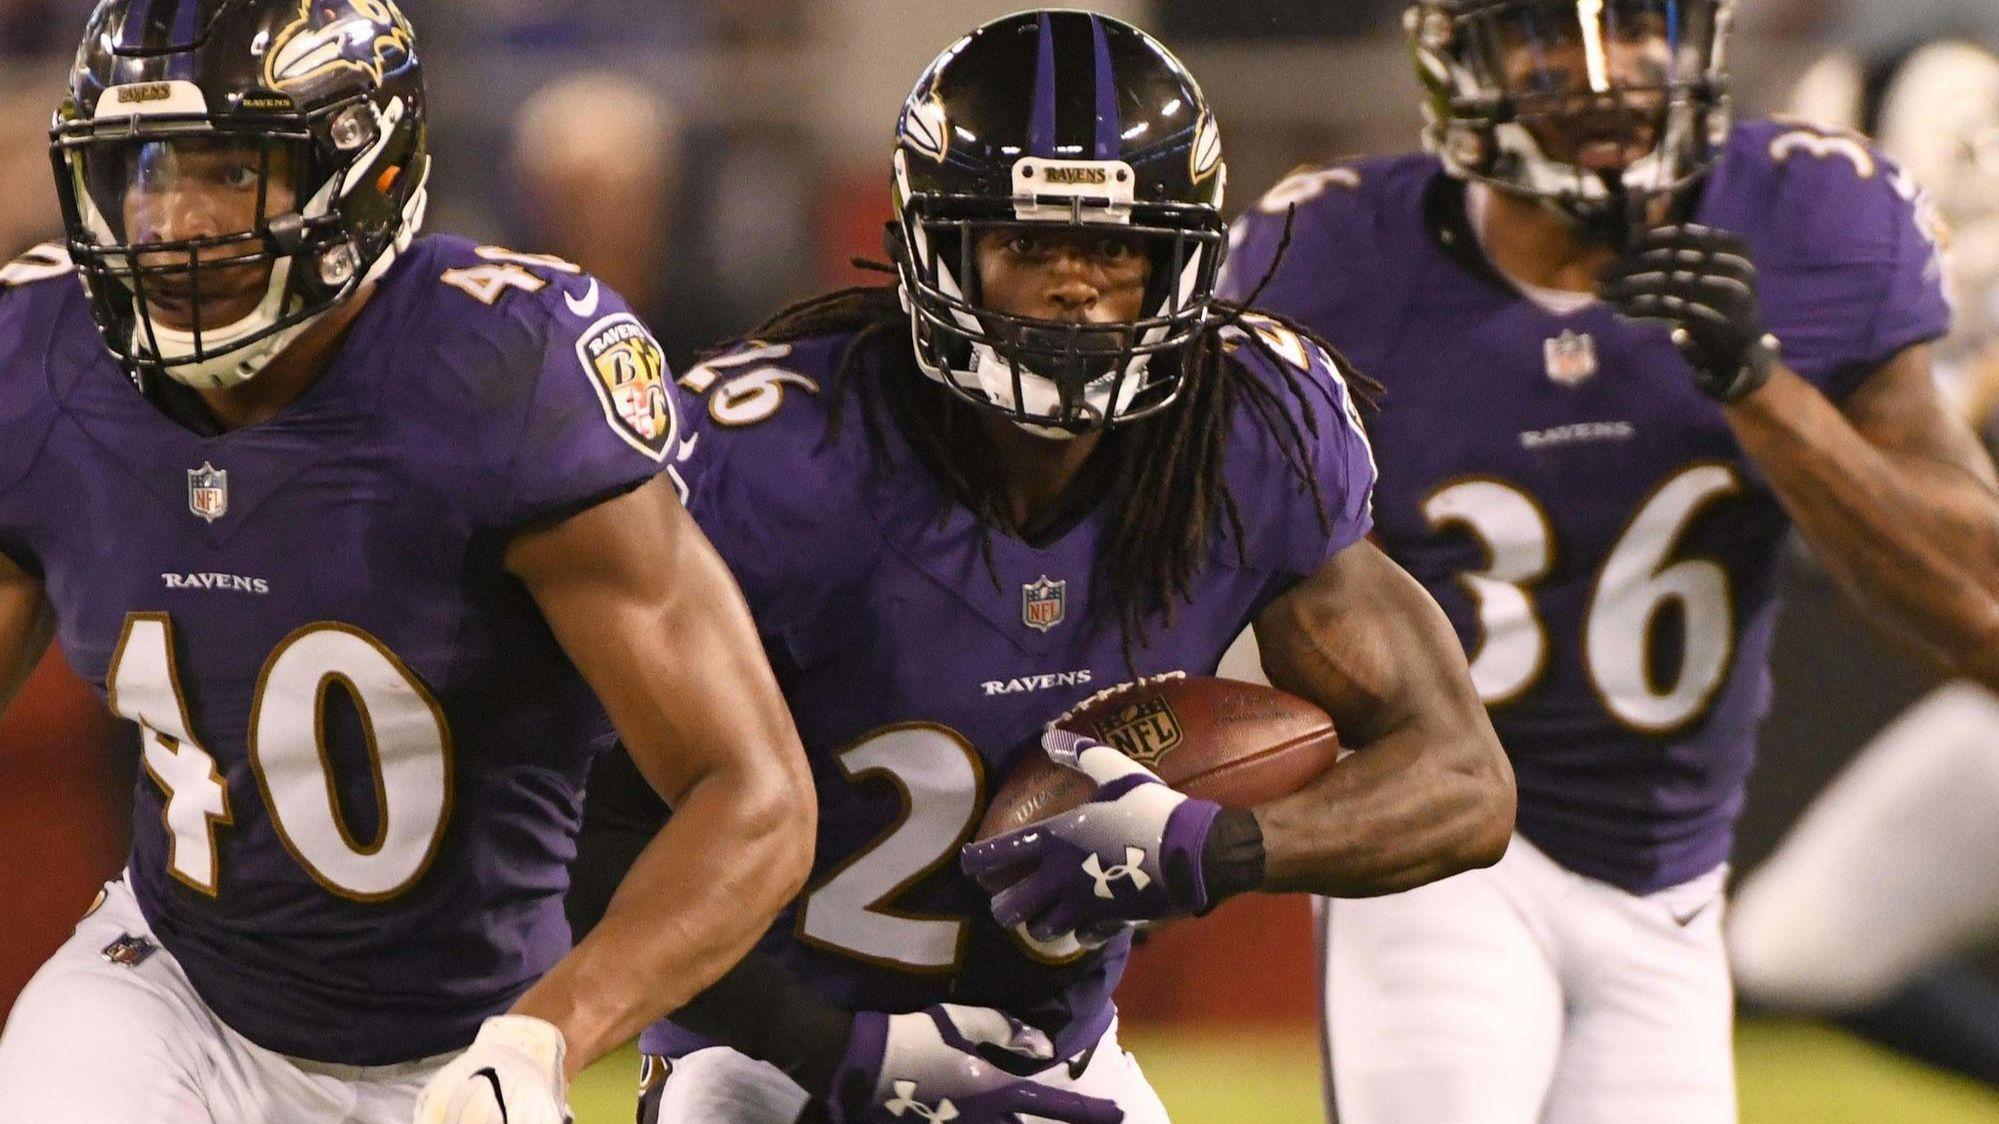 Bs-sp-ravens-notes-canady-dixon-fail-to-practice-again-20180911